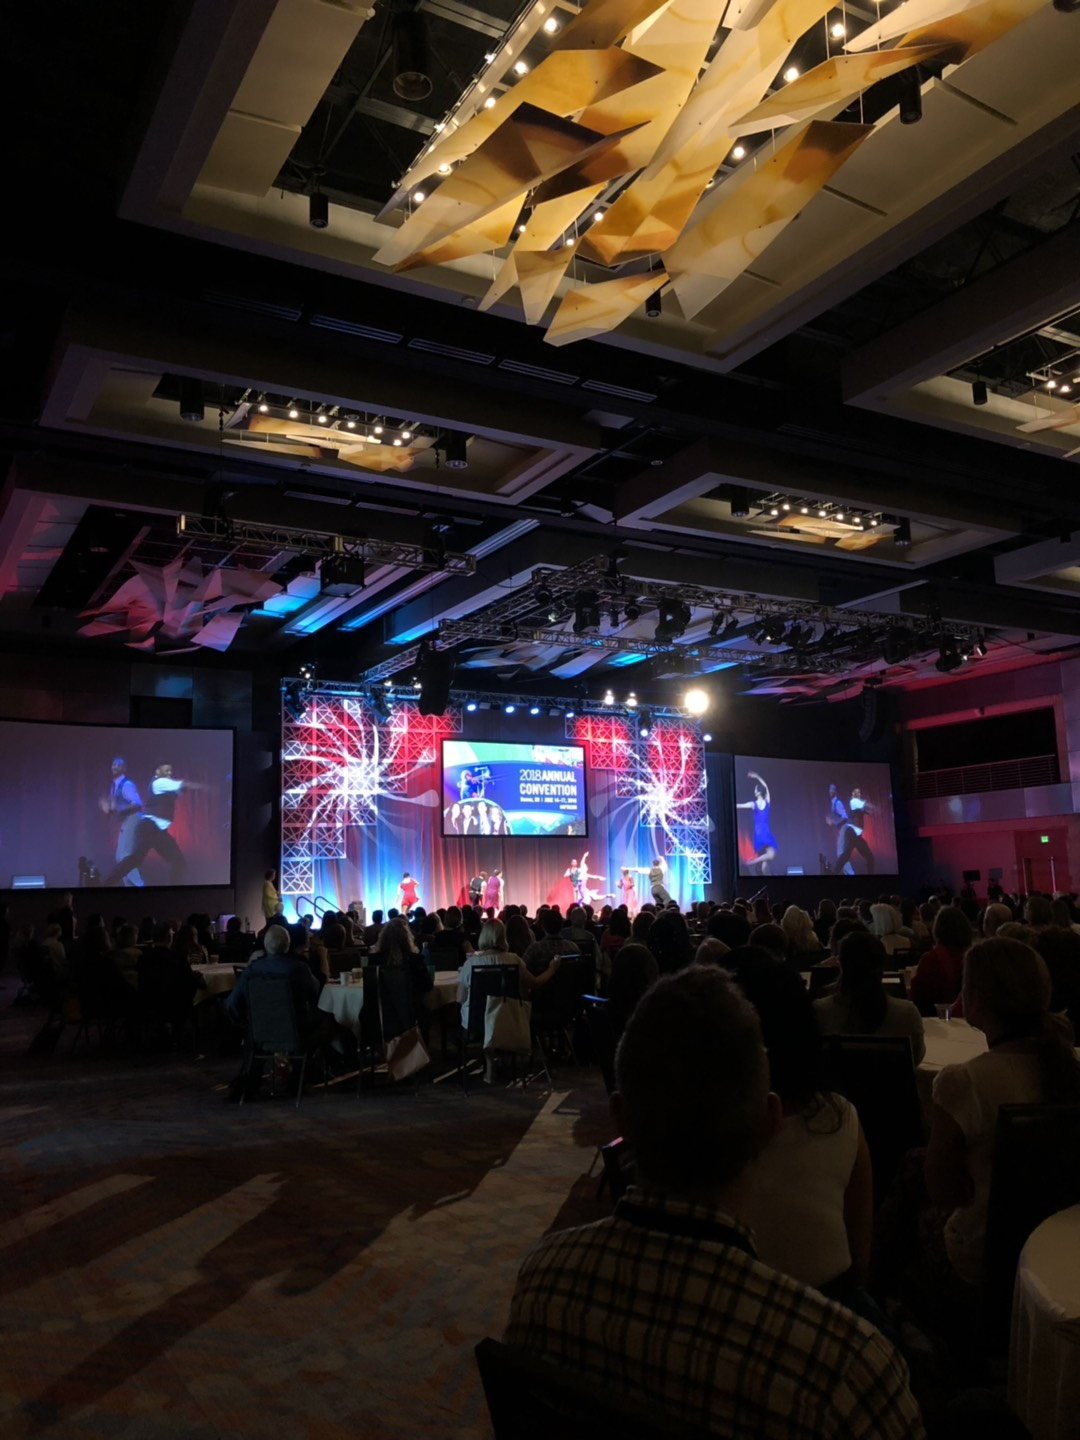 Exciting festivities happening at AFTACON. Photo by Megan Keogh, SmartSimple Business Analyst